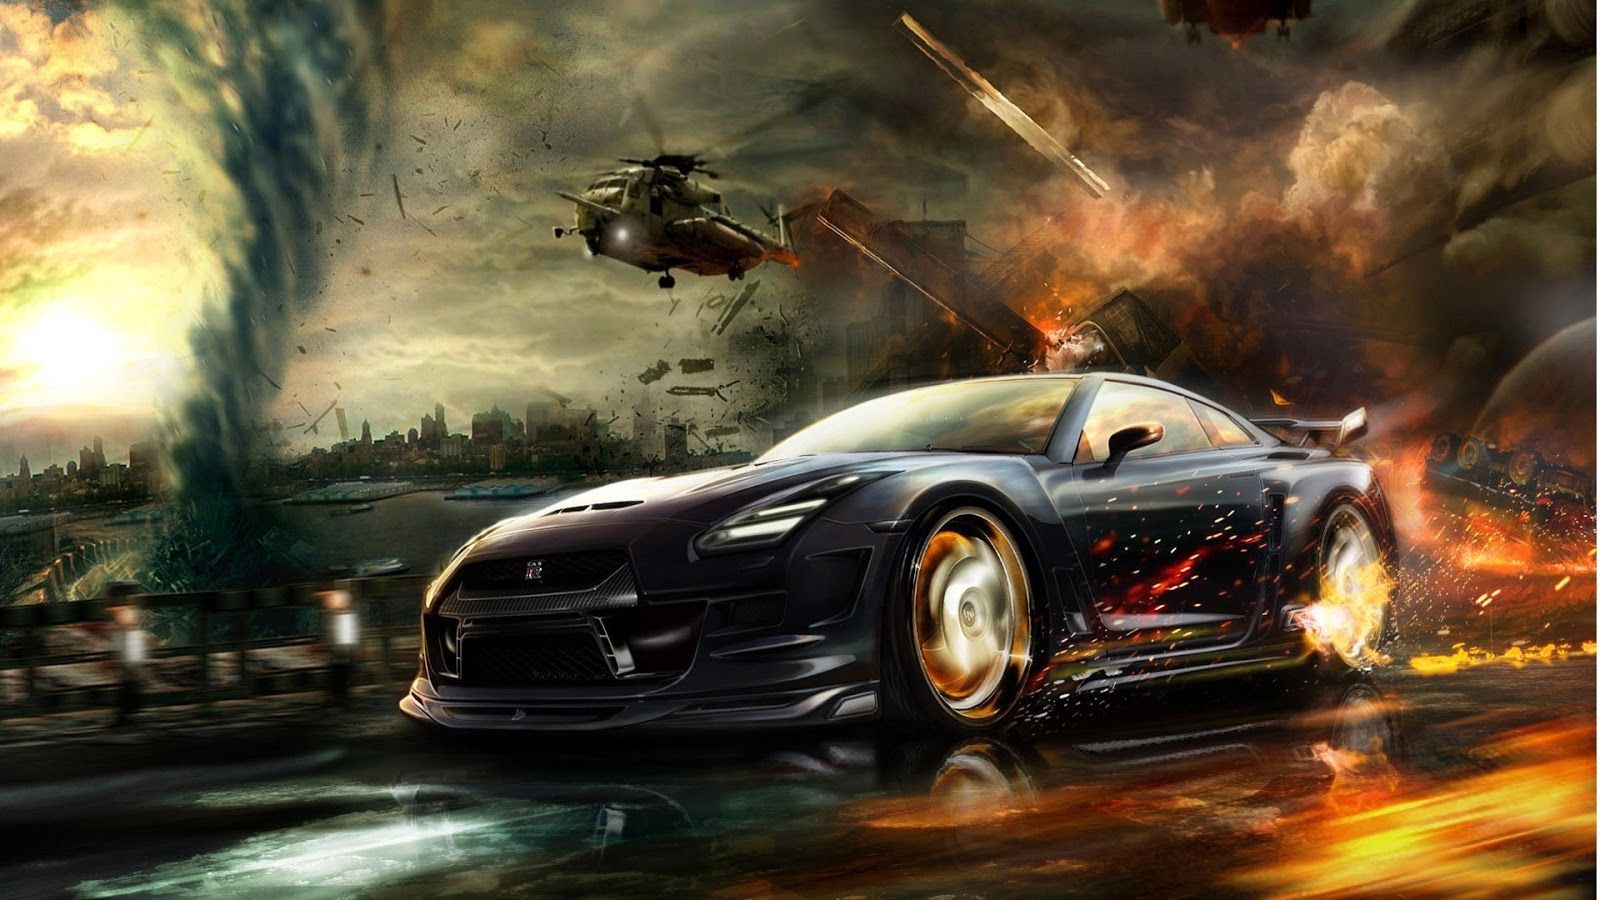 Wallpapers Cool Car Cool Car Pictures Cool Cars Car